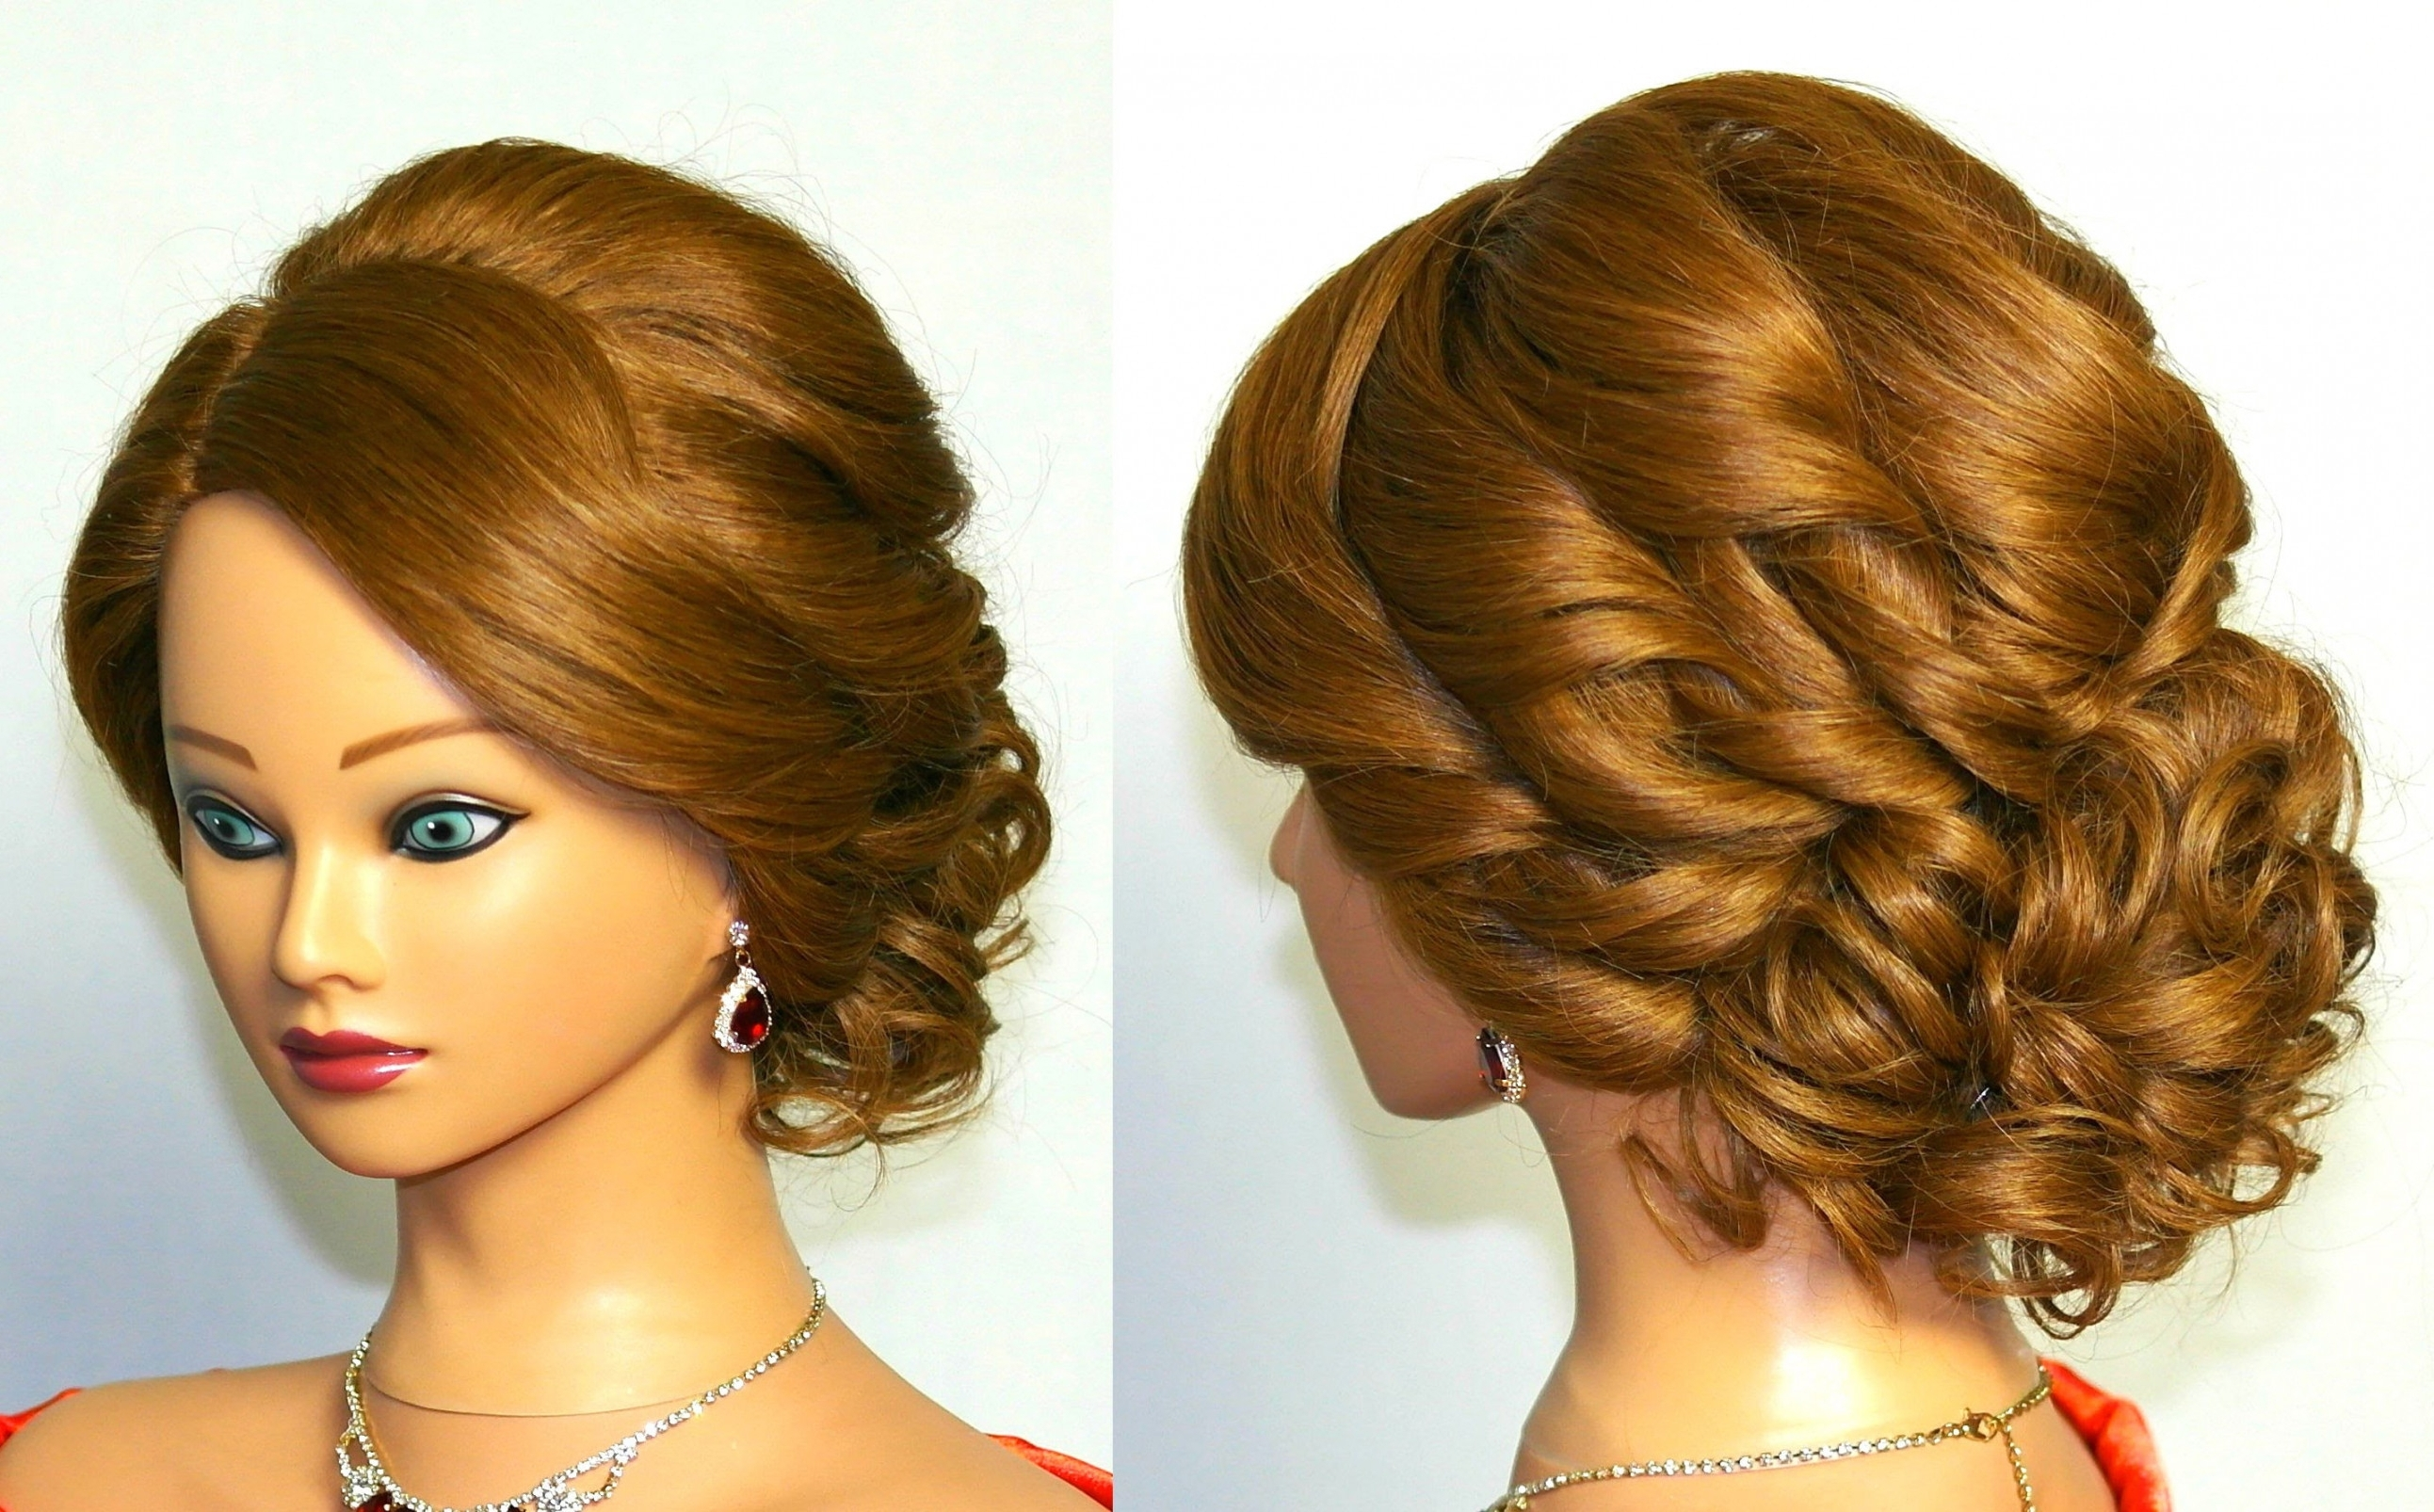 Hair Updo Hairstyles Bridal Curly Updo Hairstyle For Medium Hair Regarding Pretty Updo Hairstyles For Long Hair (View 9 of 15)